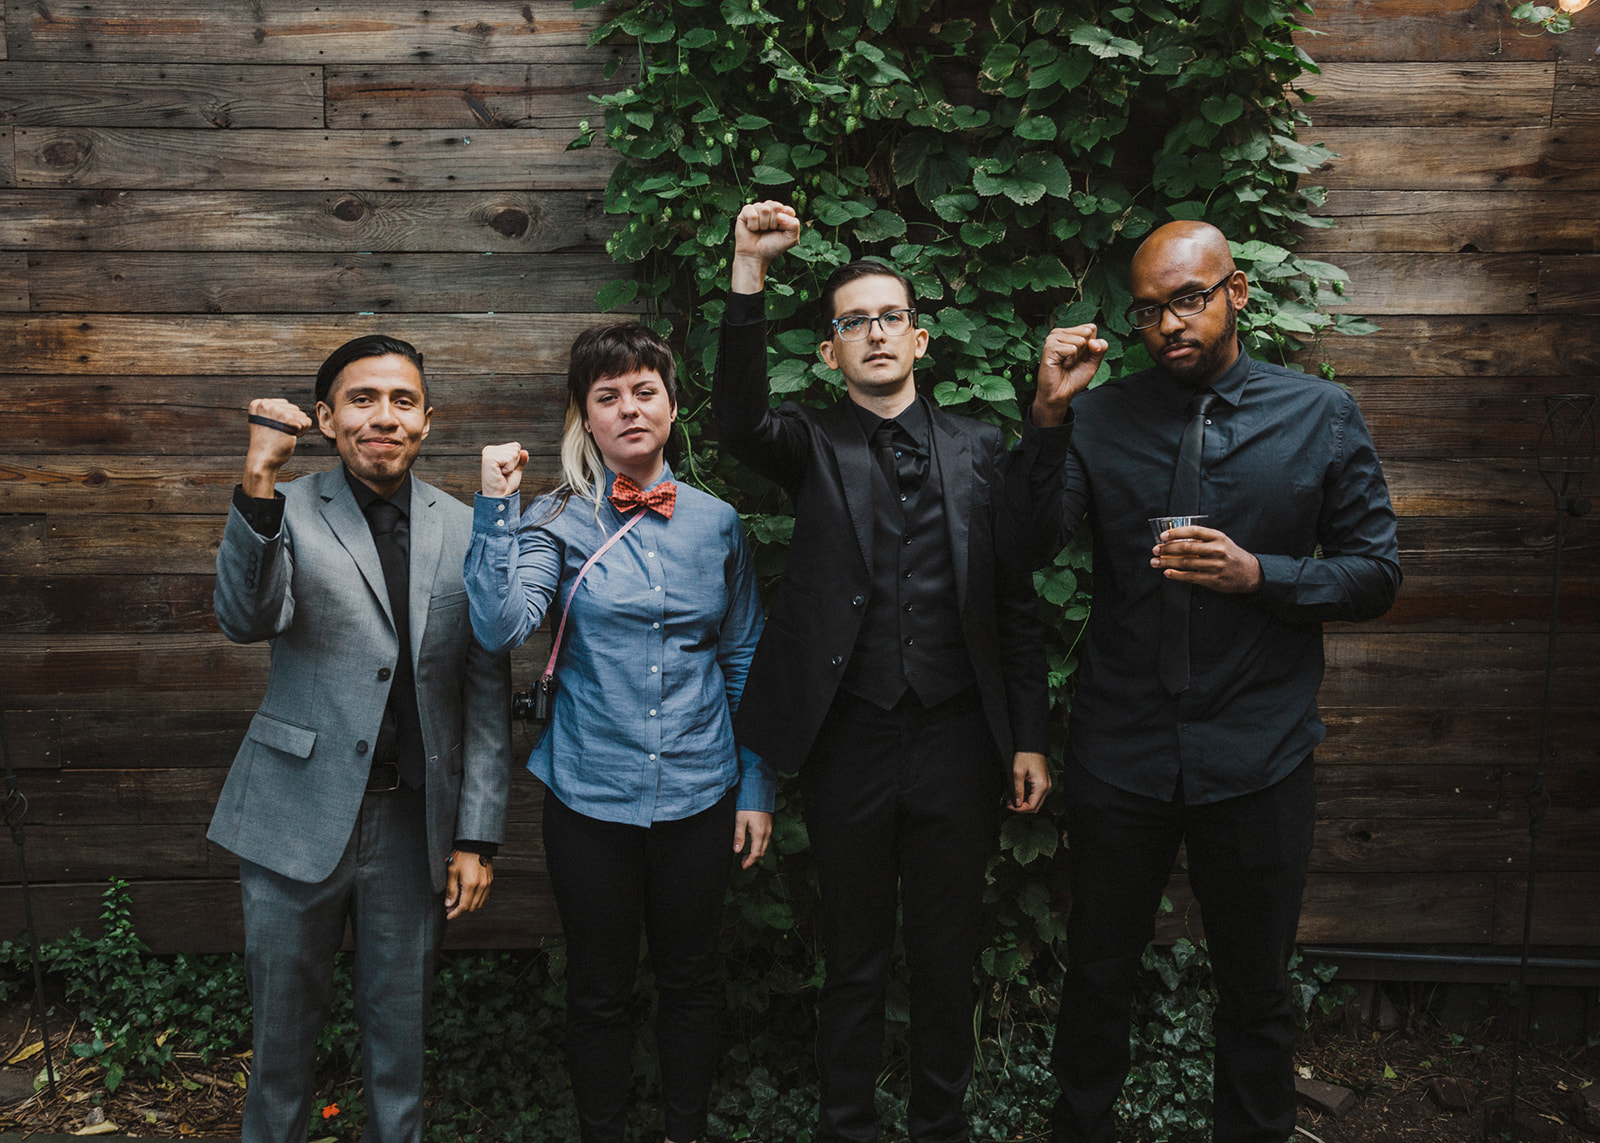 Groom and guests raising up fists in solidarity at wedding by Austin Texas LGBTQ friendly wedding photographer Ziggy Shoots